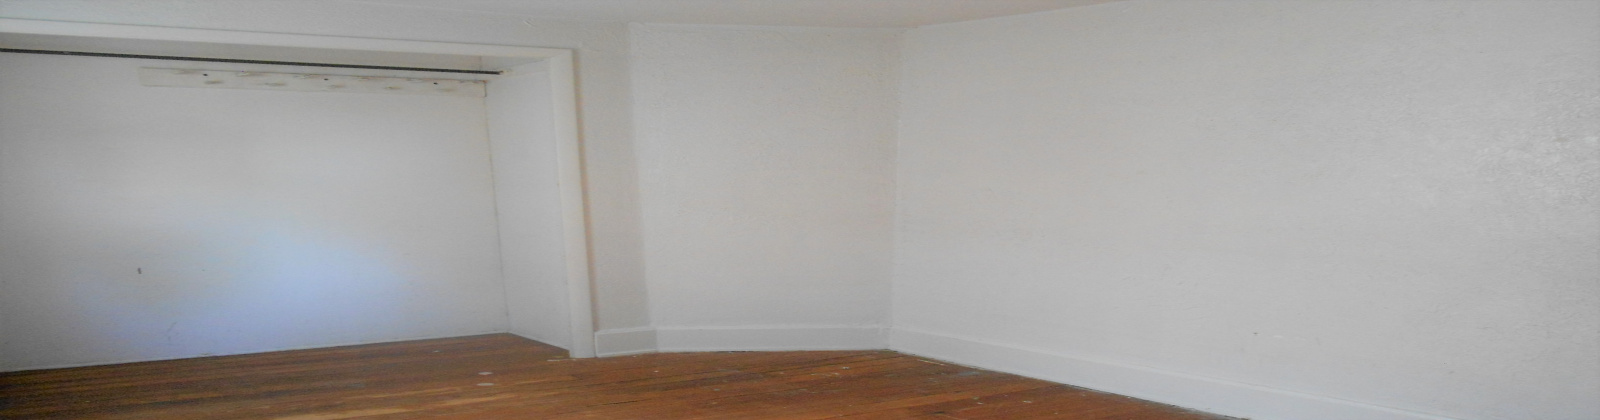 175 N Lancaster St. Athens, Ohio, 3 Bedrooms Bedrooms, ,1 BathroomBathrooms,Apartment,For Rent,N Lancaster,1066